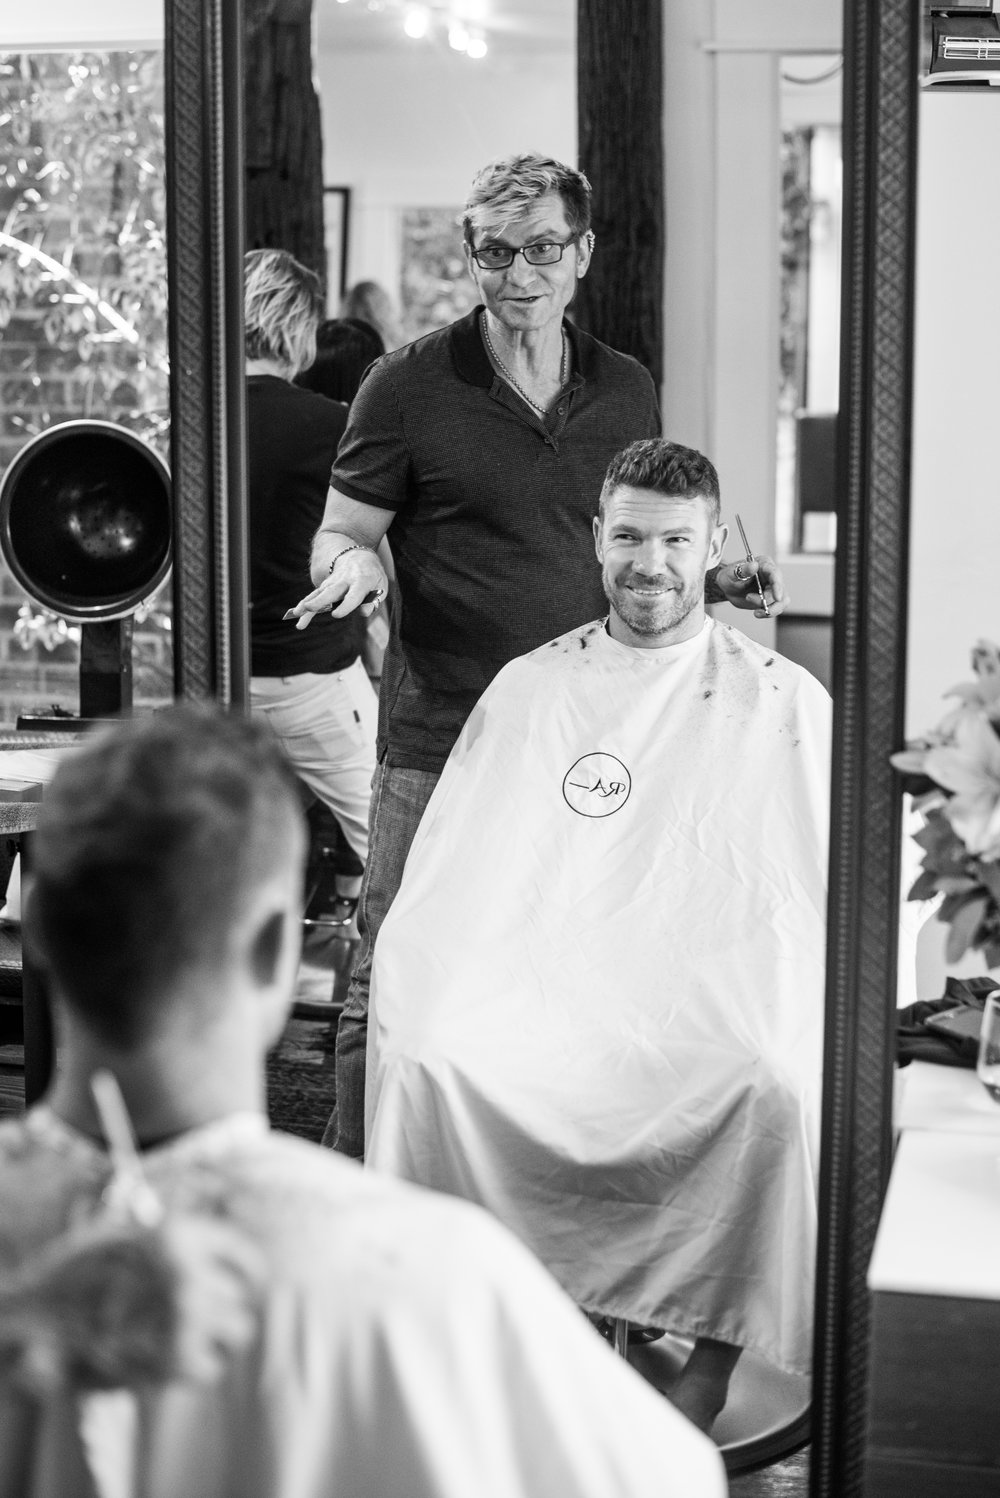 Michael John (Ra) is a hair stylist that started Makeovers that Matter, a charity that gives makeovers to homeless, female veterans.